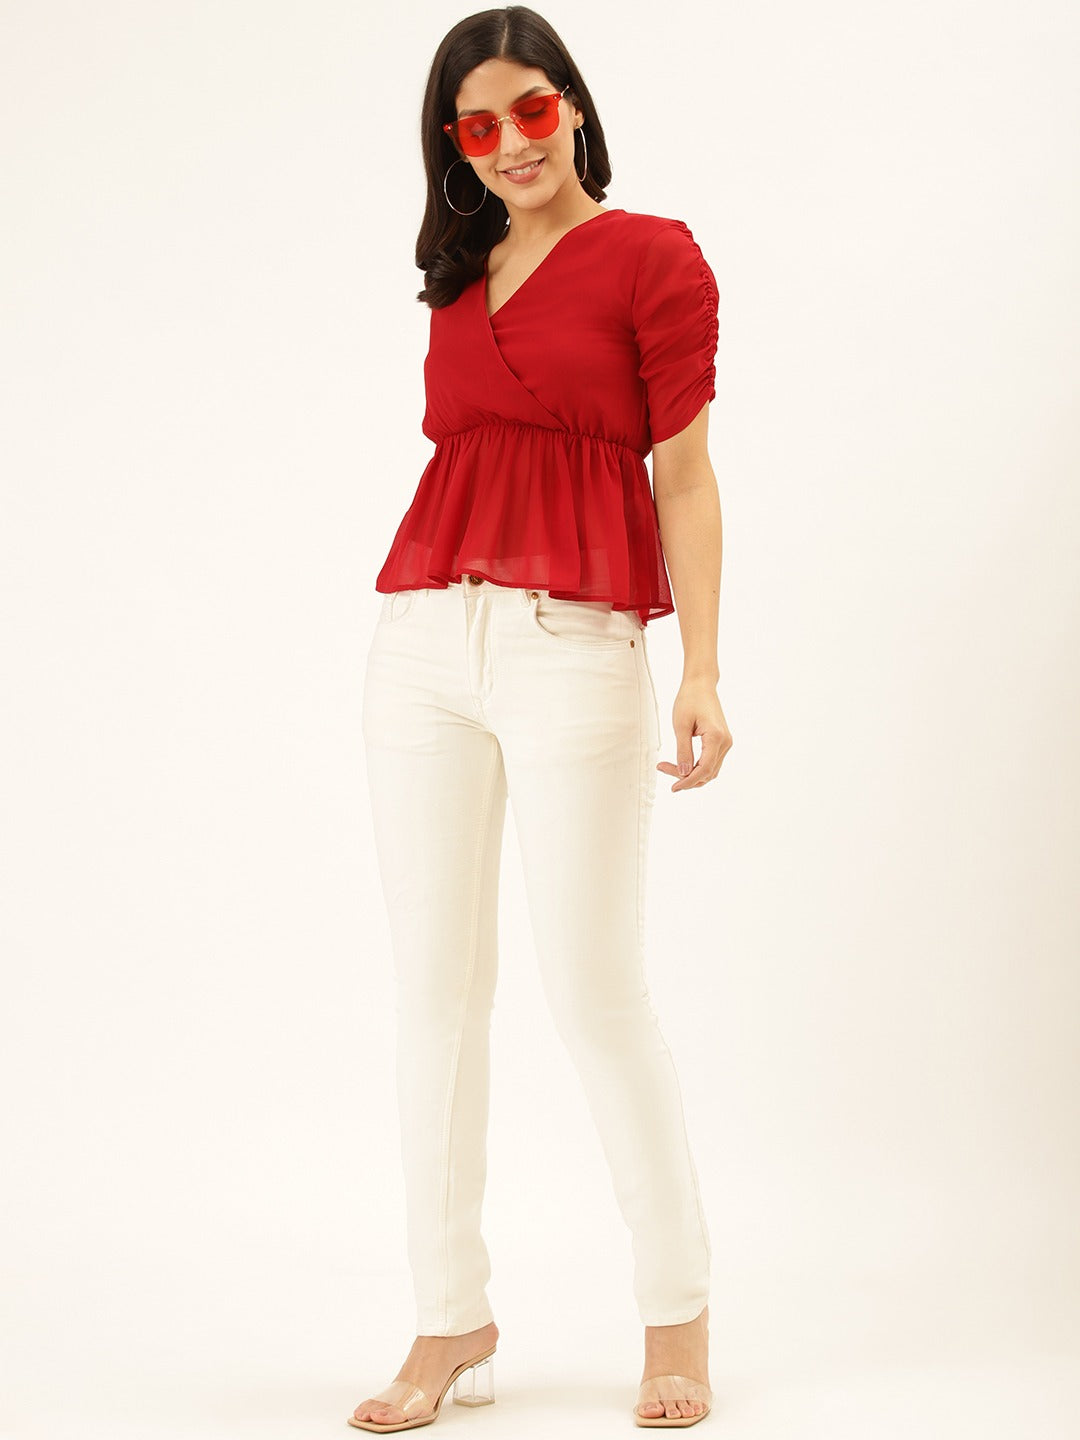 Solid Red Peplum Top